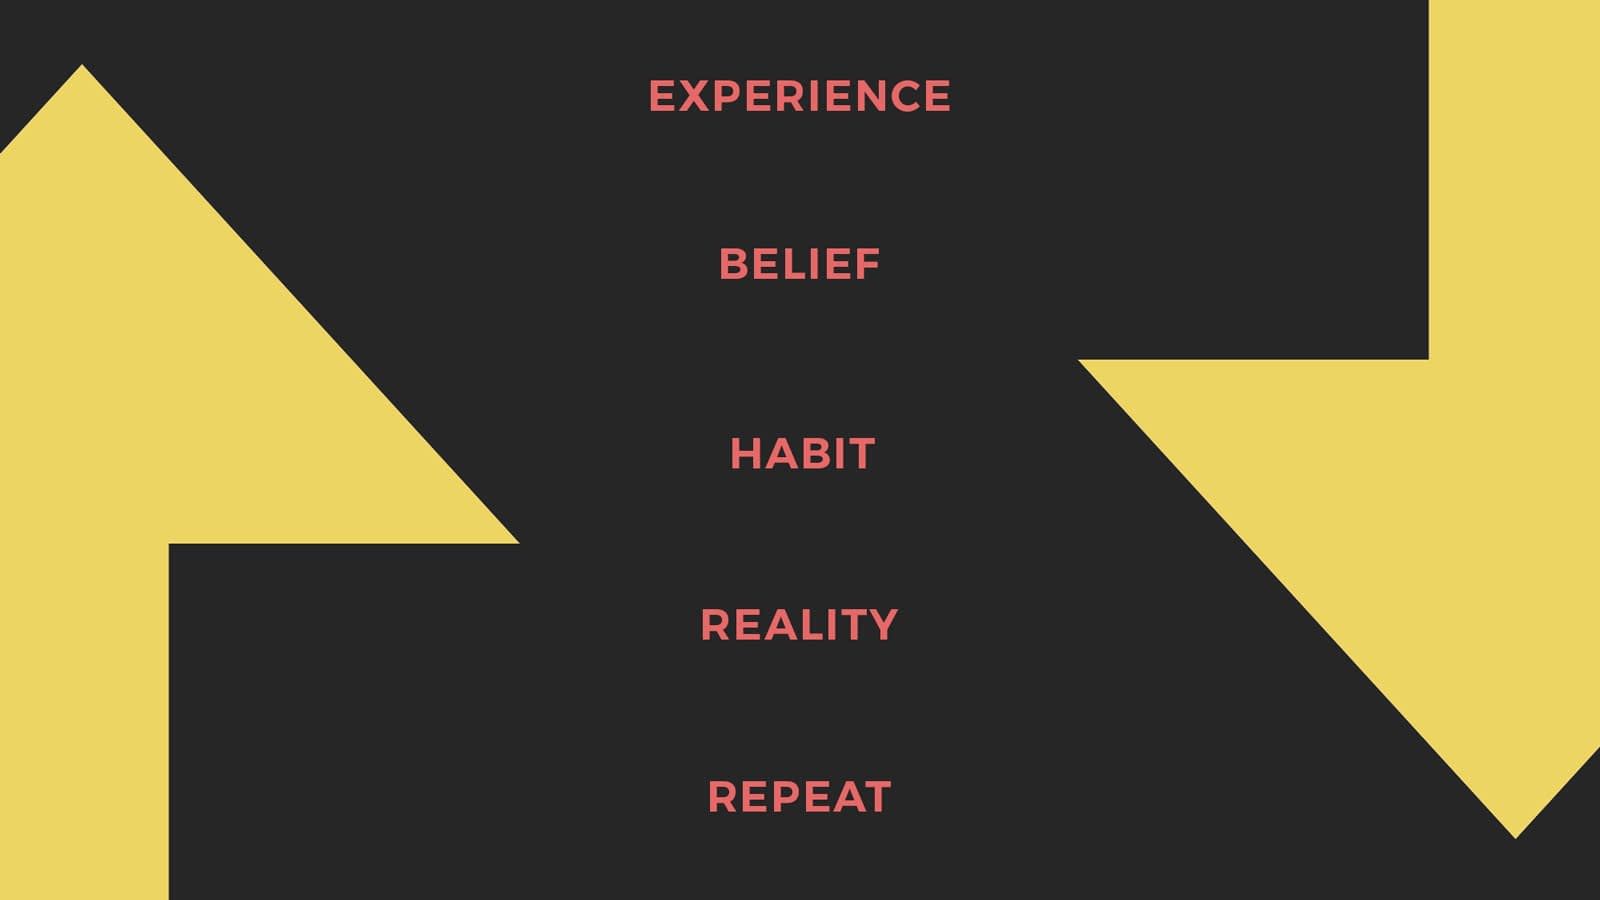 The process of developing habits routines and addictions